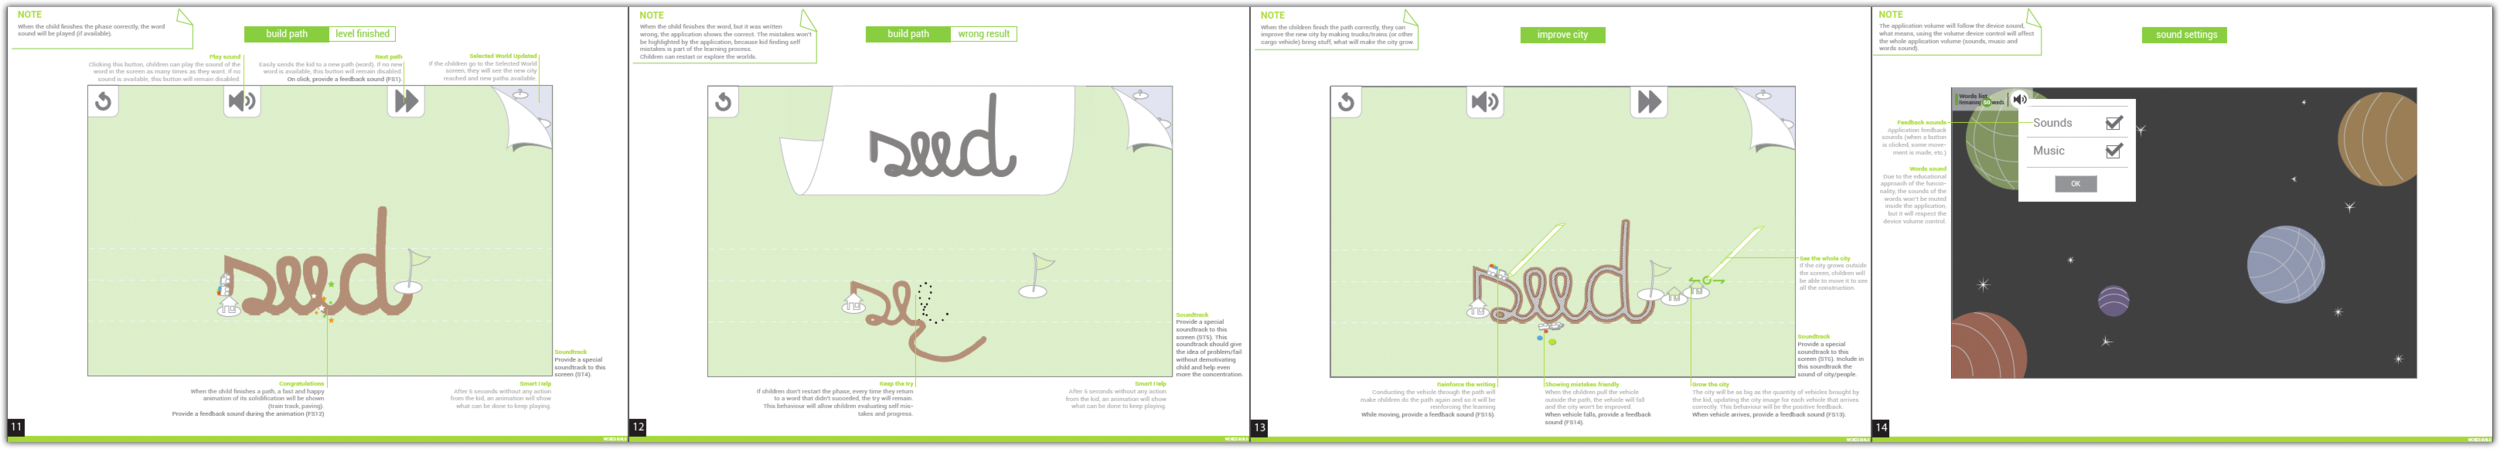 Wireframe documentation to share behavior and features with the client and the development team.